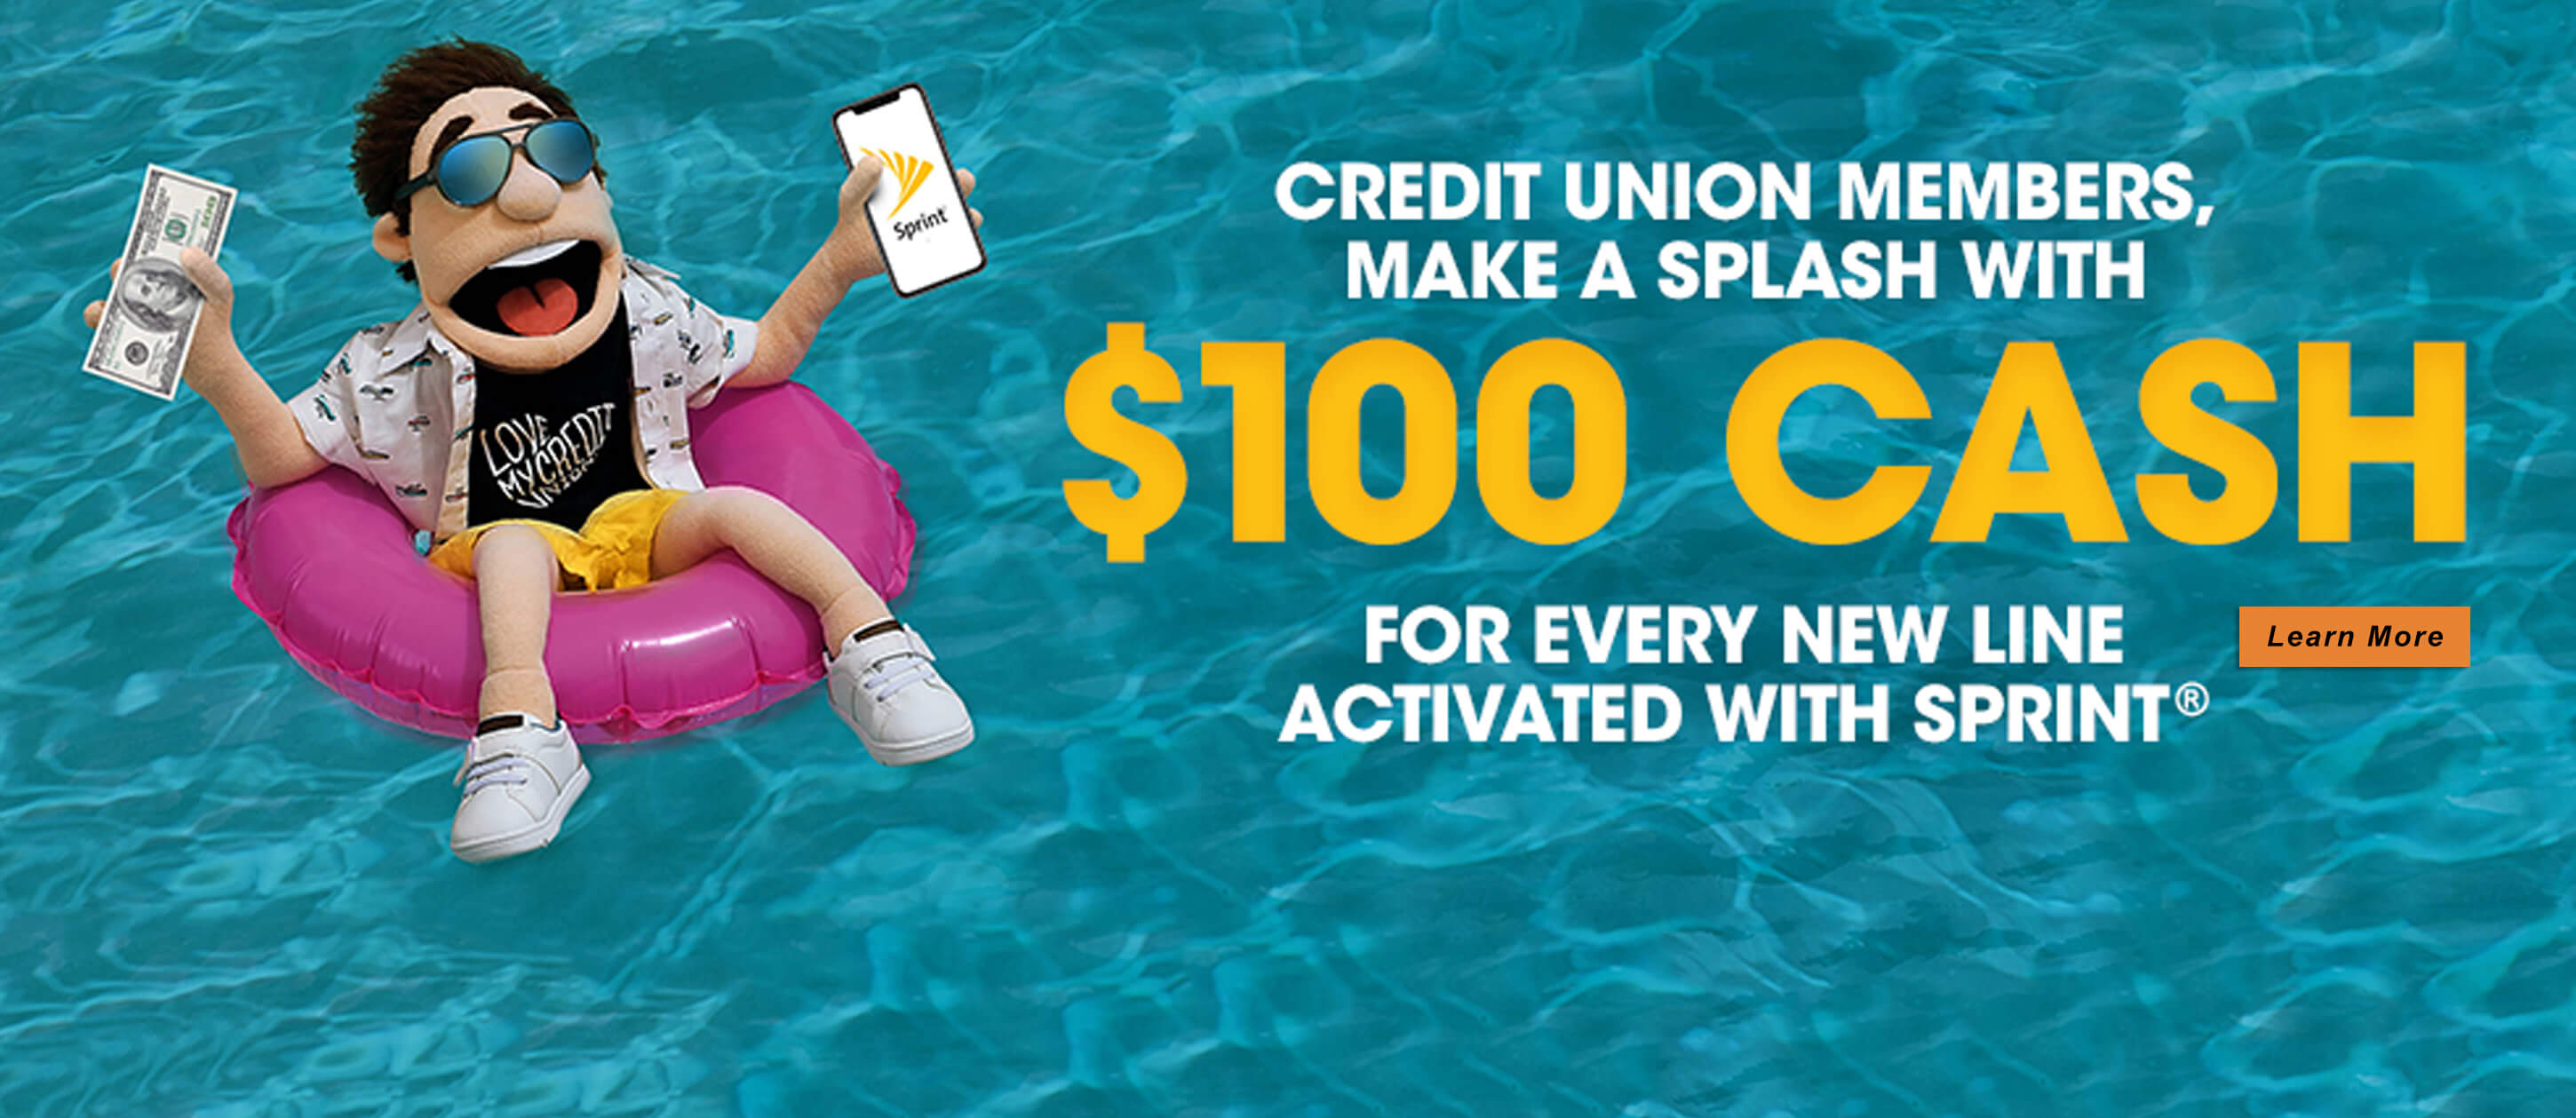 Get $100 Cash for every new line with Sprint